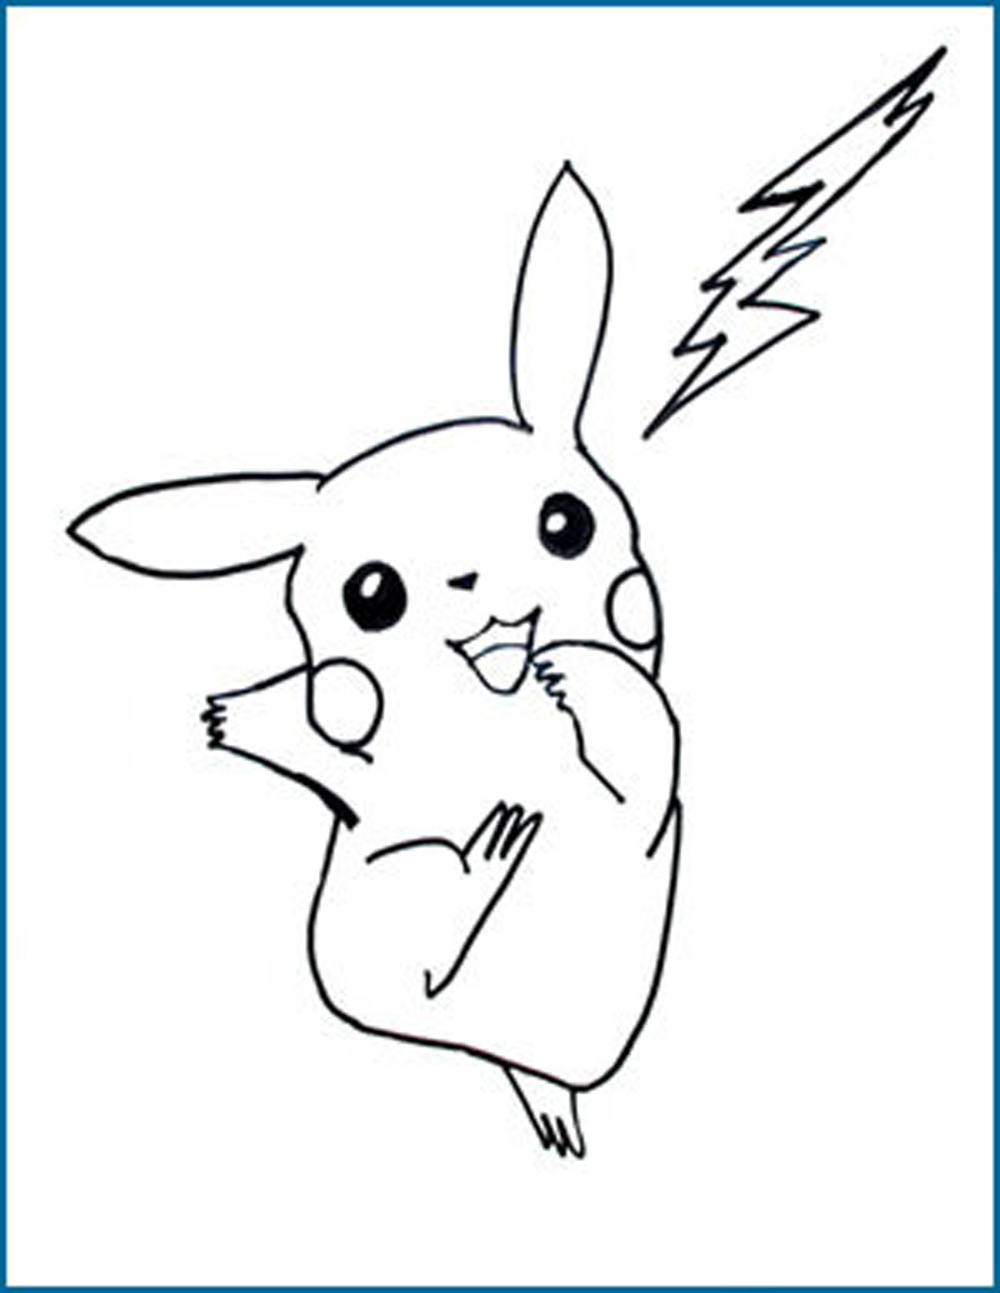 pokemon-cards-coloring-pages | | BestAppsForKids.com